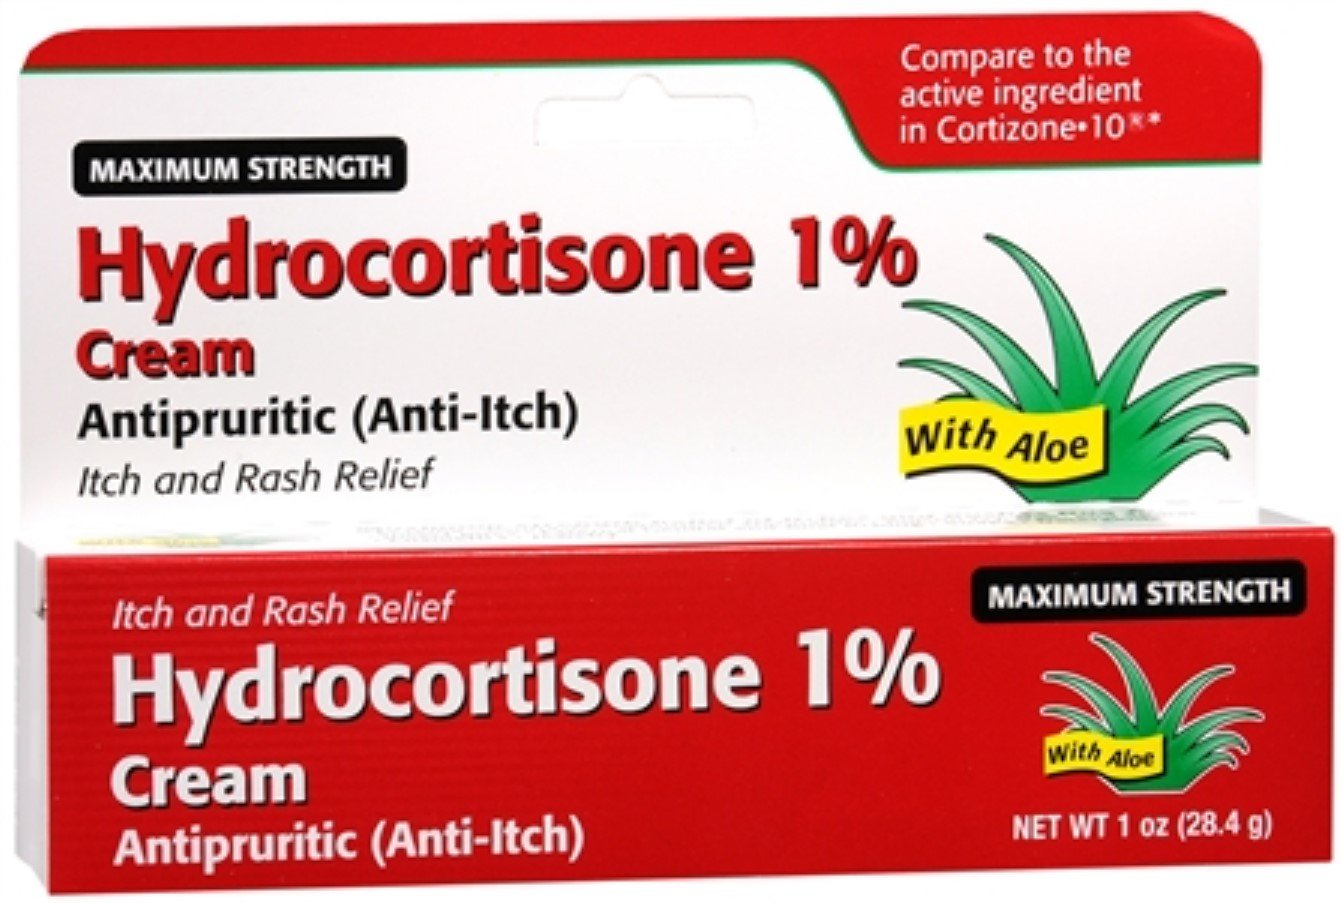 Topical Over-the-Counter (OTC) 1% Hydrocortisone Cream